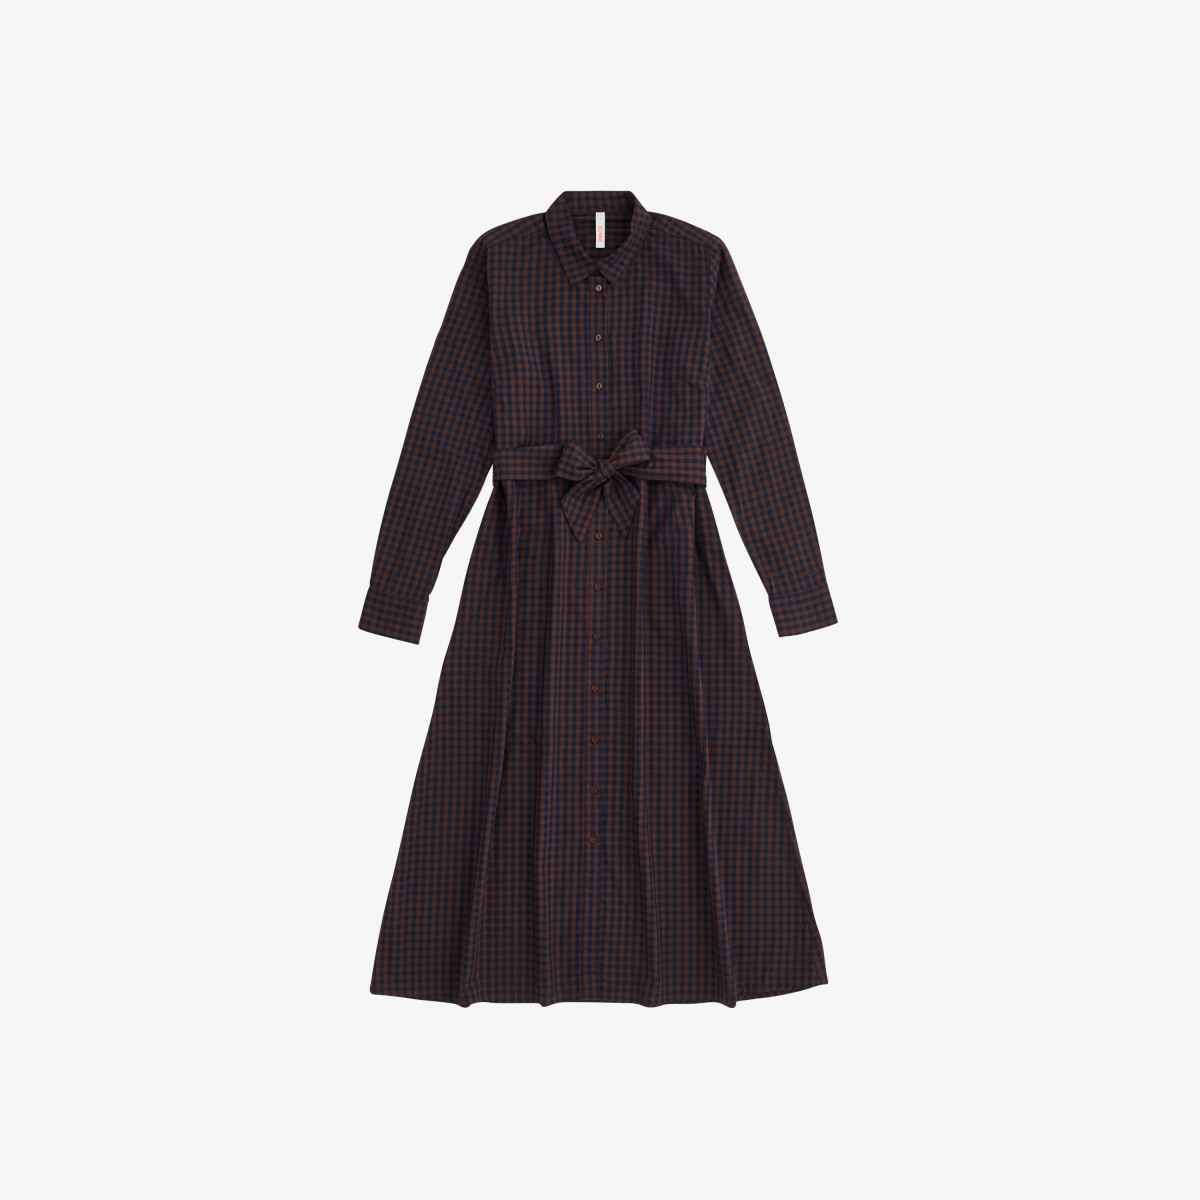 LONG DRESS L/S NAVY BLUE/BROWN